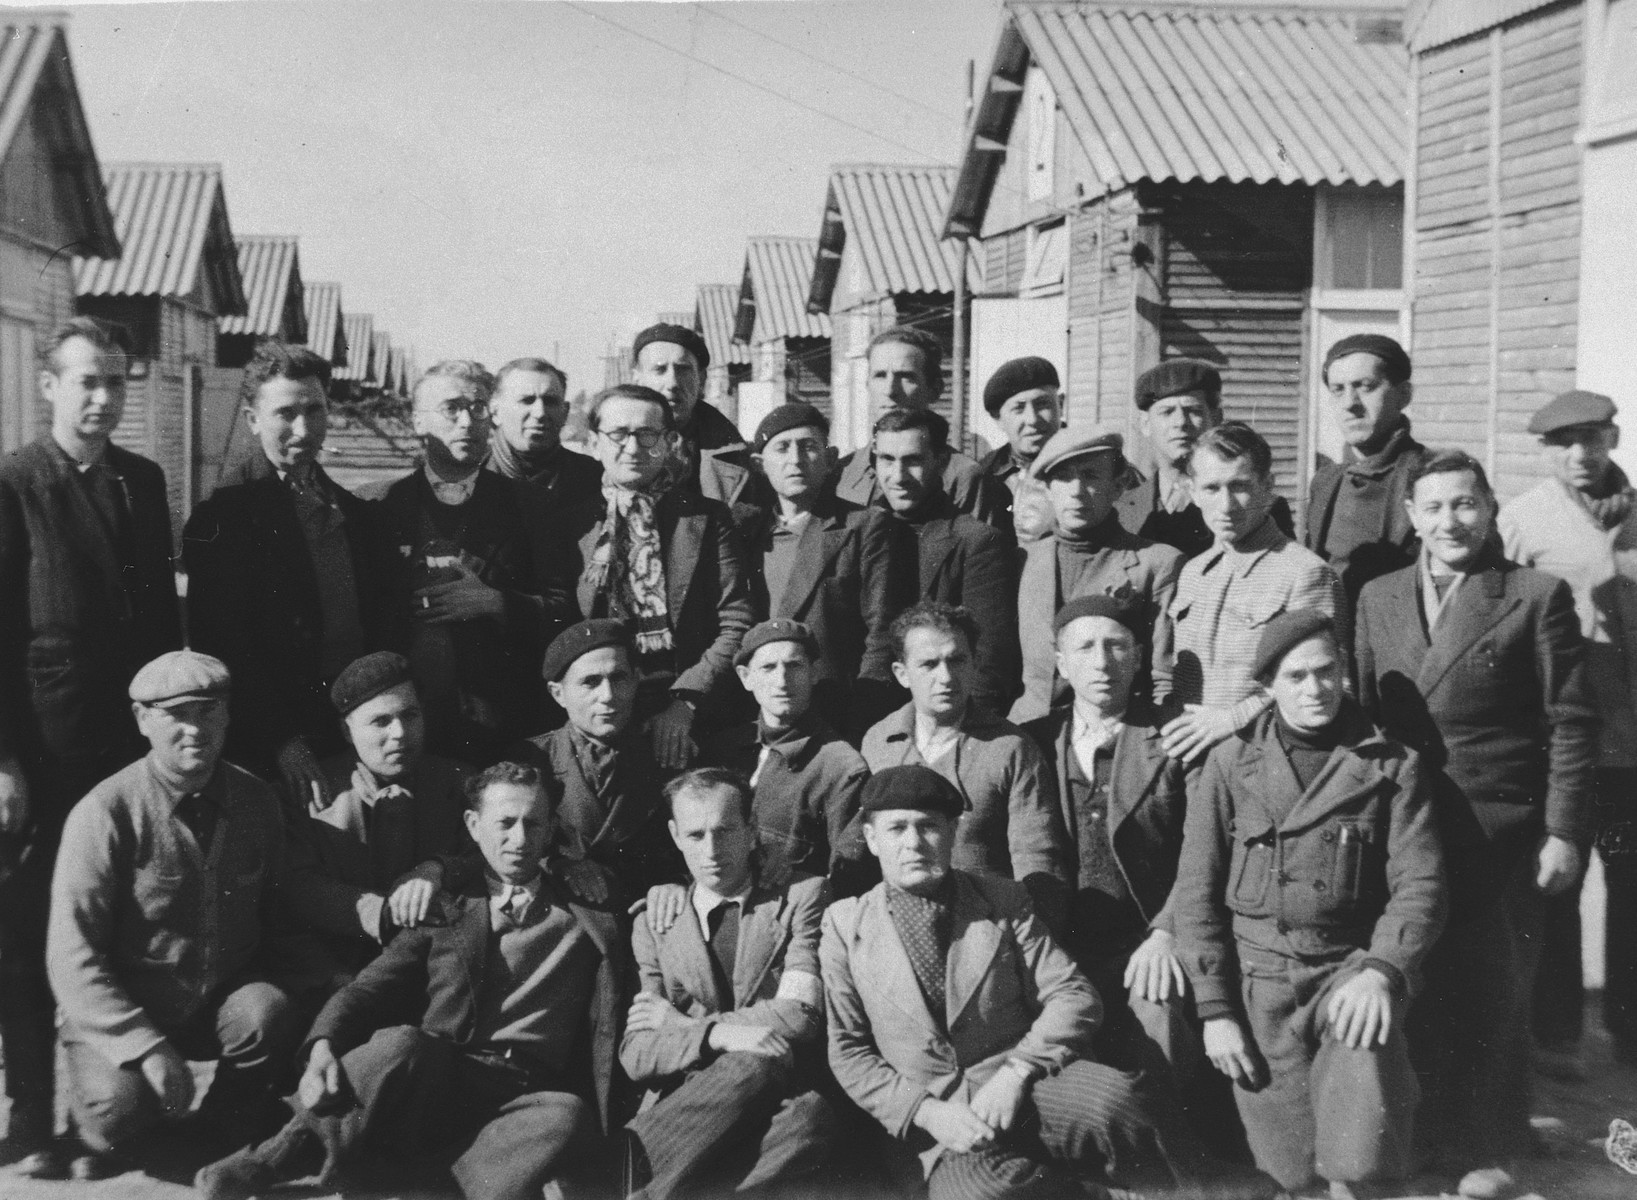 Group portrait of male prisoners in front of the barracks of the Beaune-la-Rolande internment camp.  Among those pictured is Menachem Mendel Lichtenstein (middle row, fifth from the left).